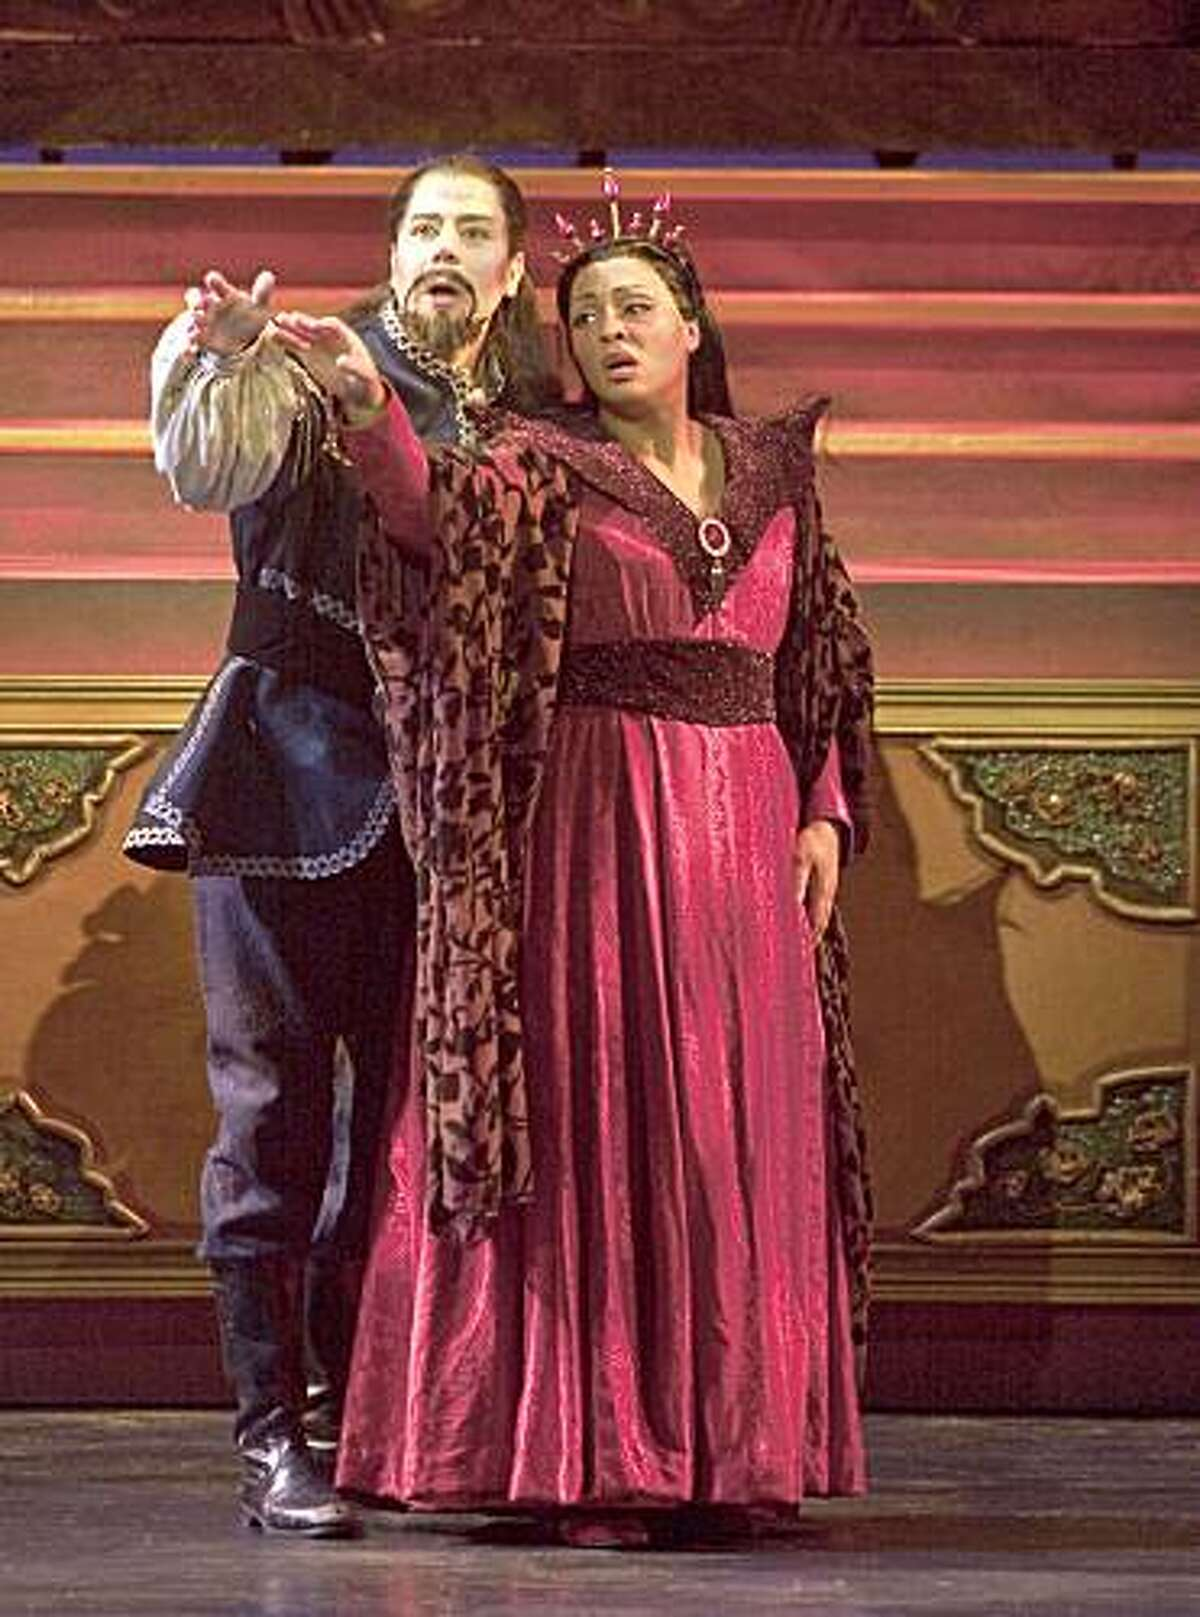 Christopher Jackson (l.) as Calaf and Othalie Graham as Turandot in Puccini's